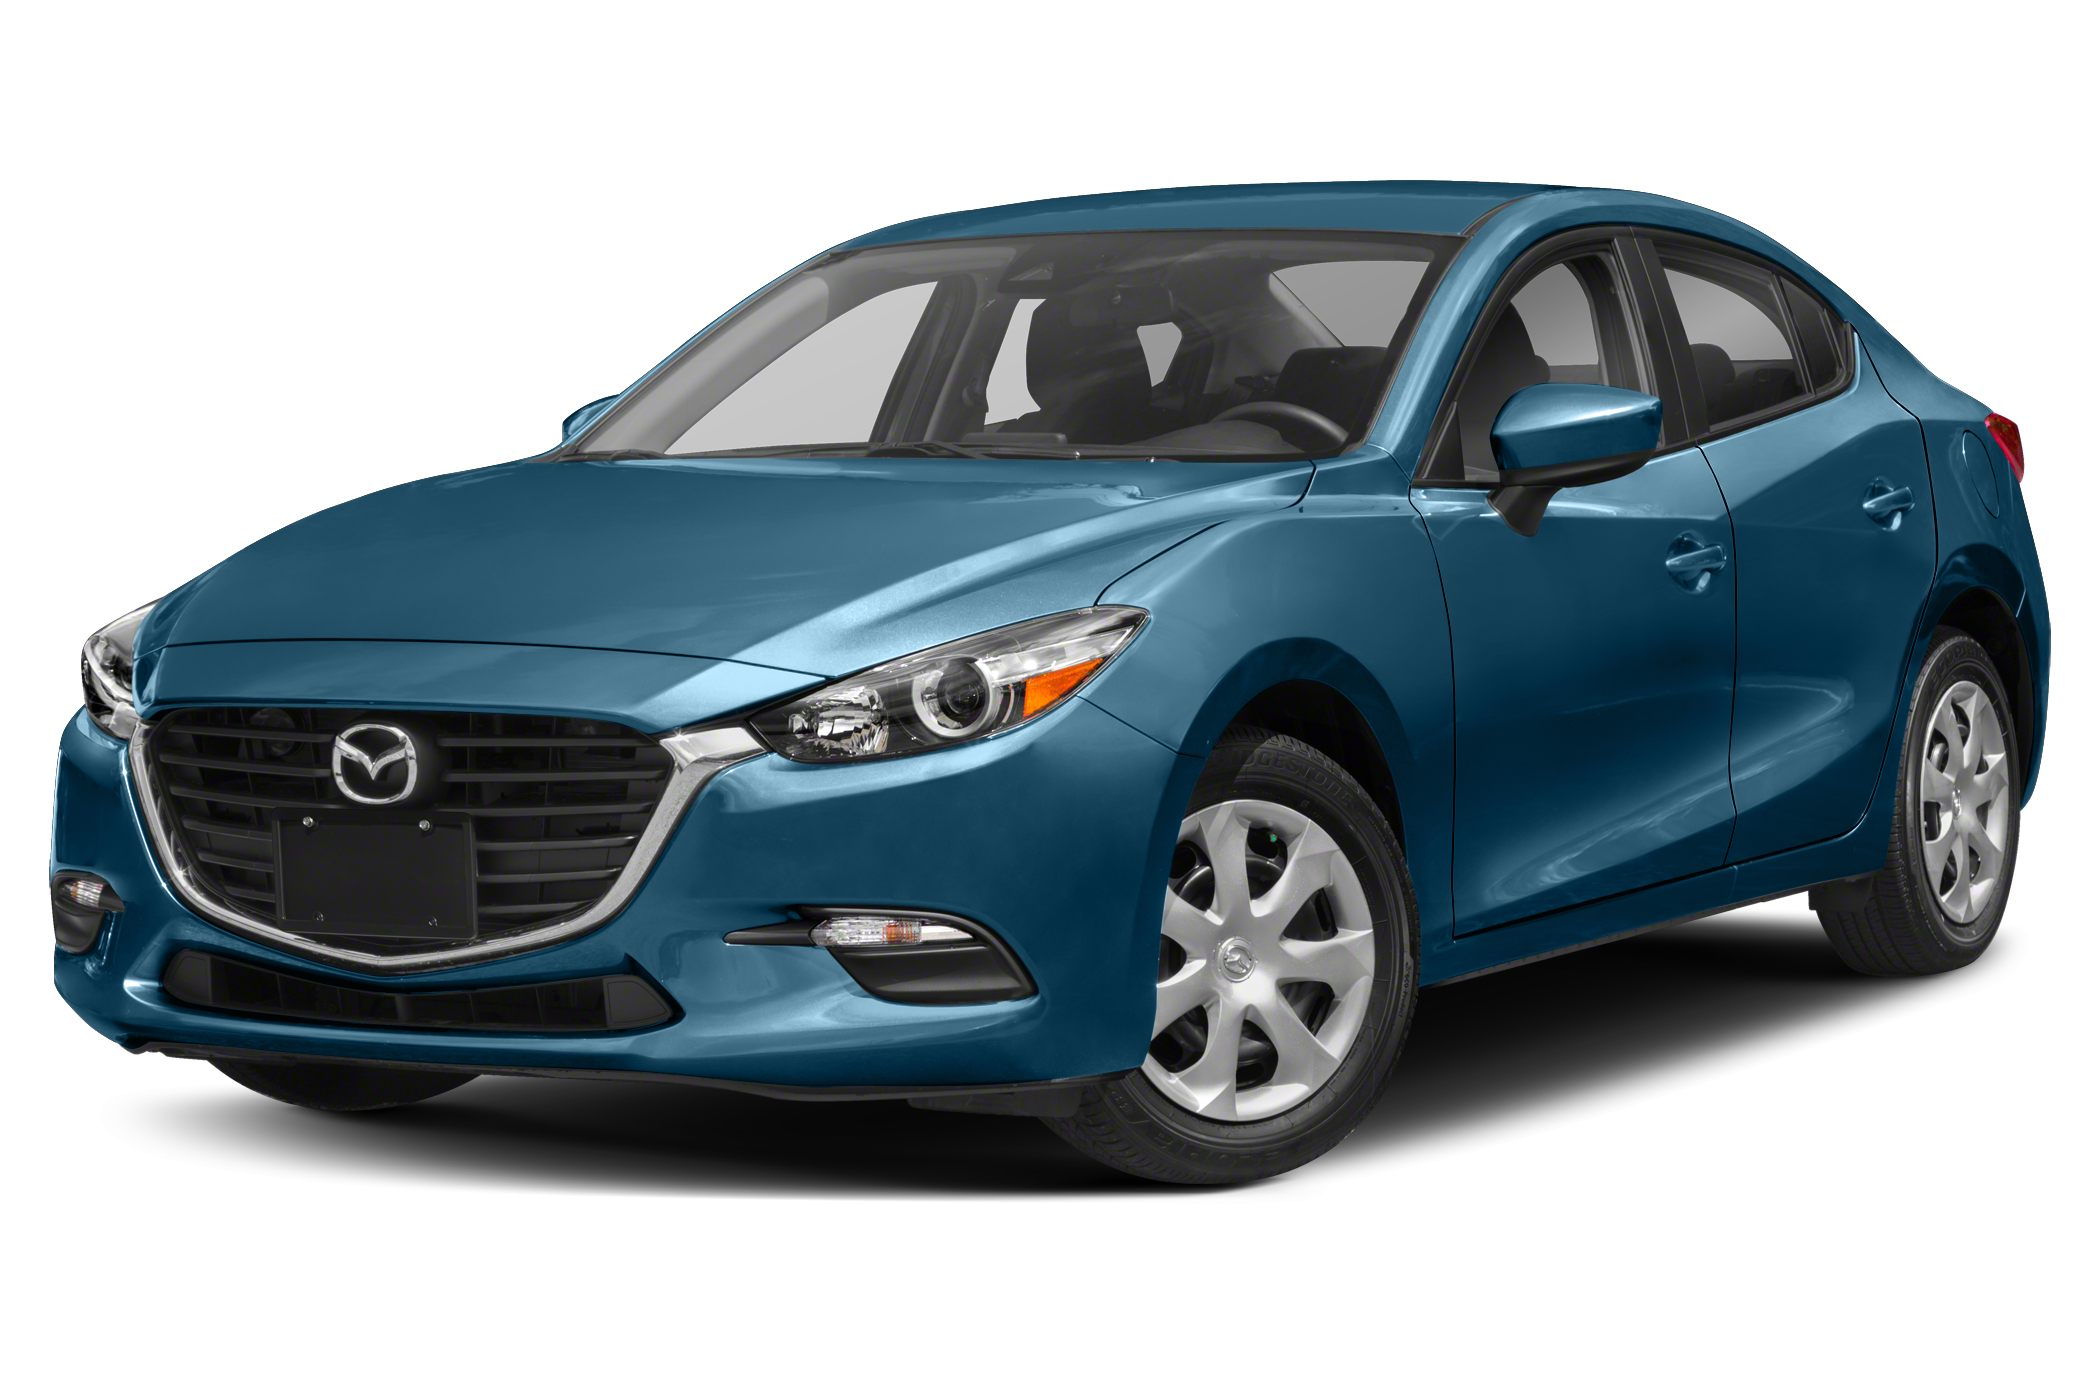 Refreshed 2017 Mazda 3 and 6 get G-Vectoring Control ...